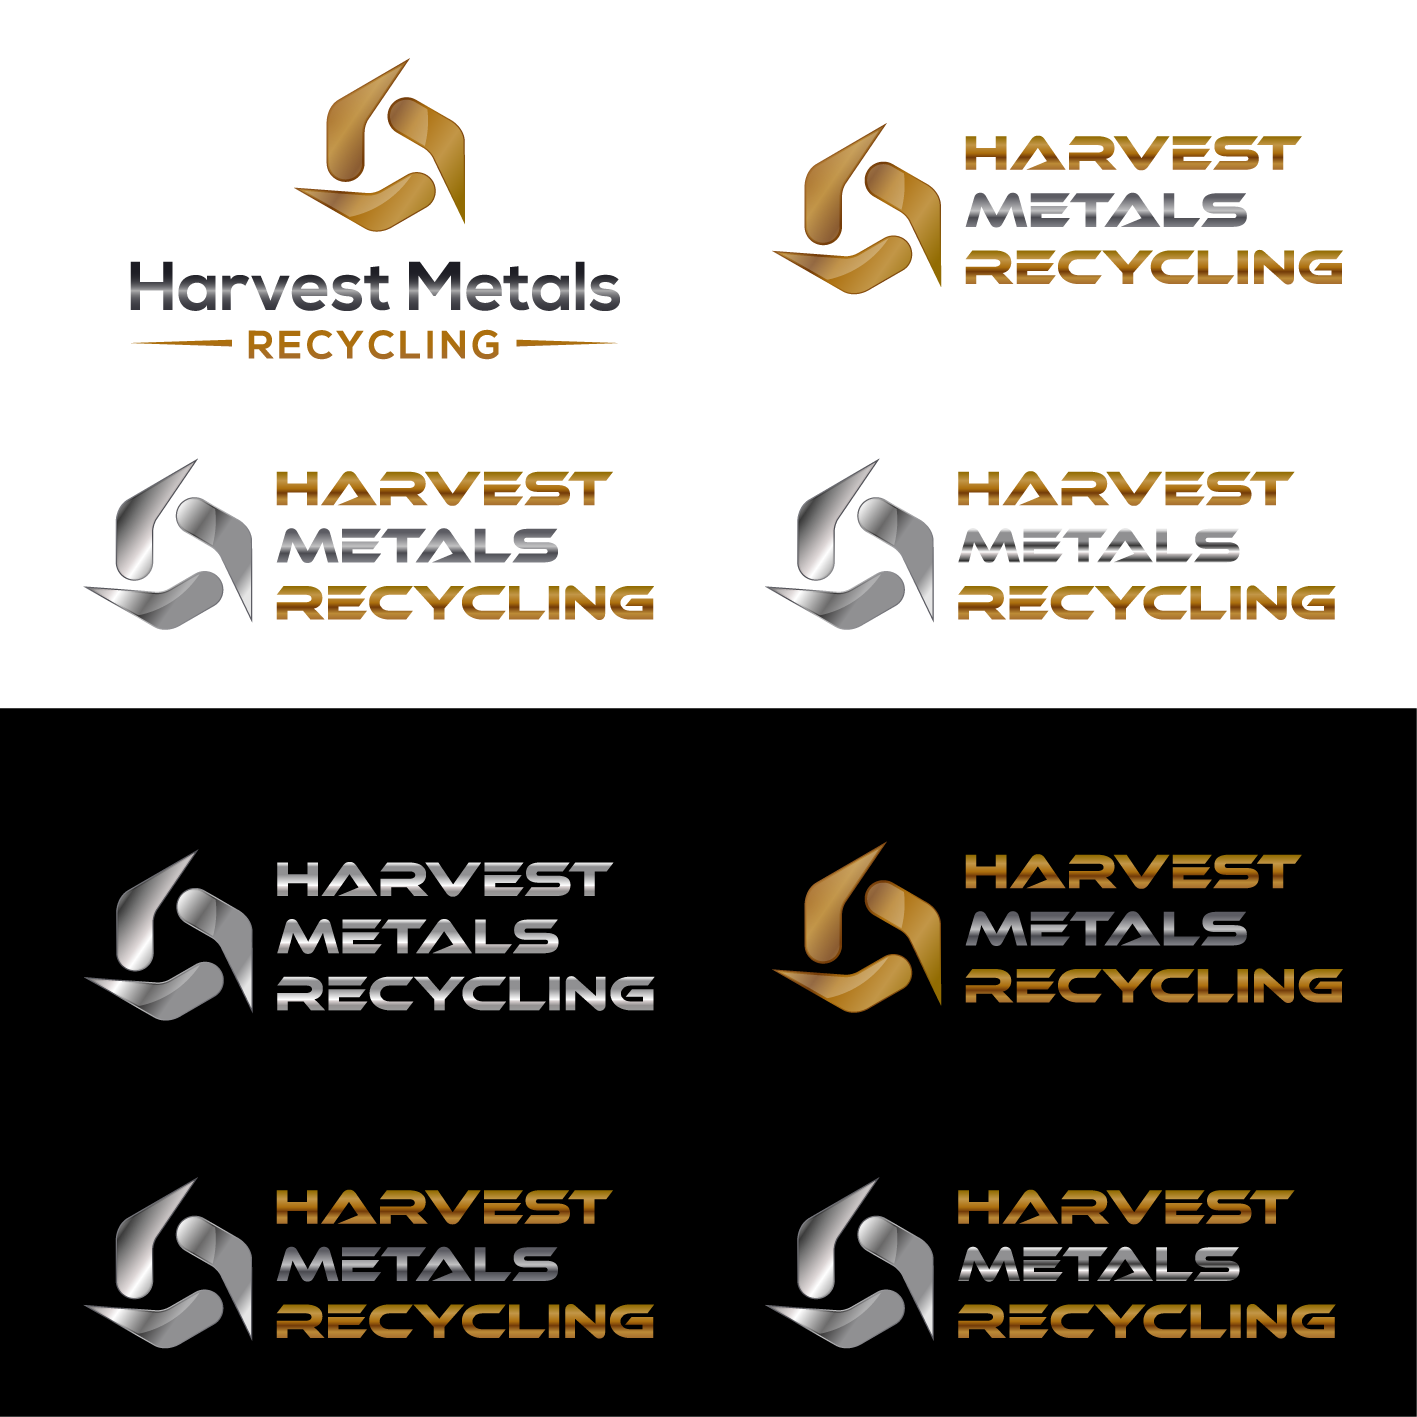 Elegant Playful Health Poster Design For A Company By: Elegant, Playful, Recycling Logo Design For Harvest Metals